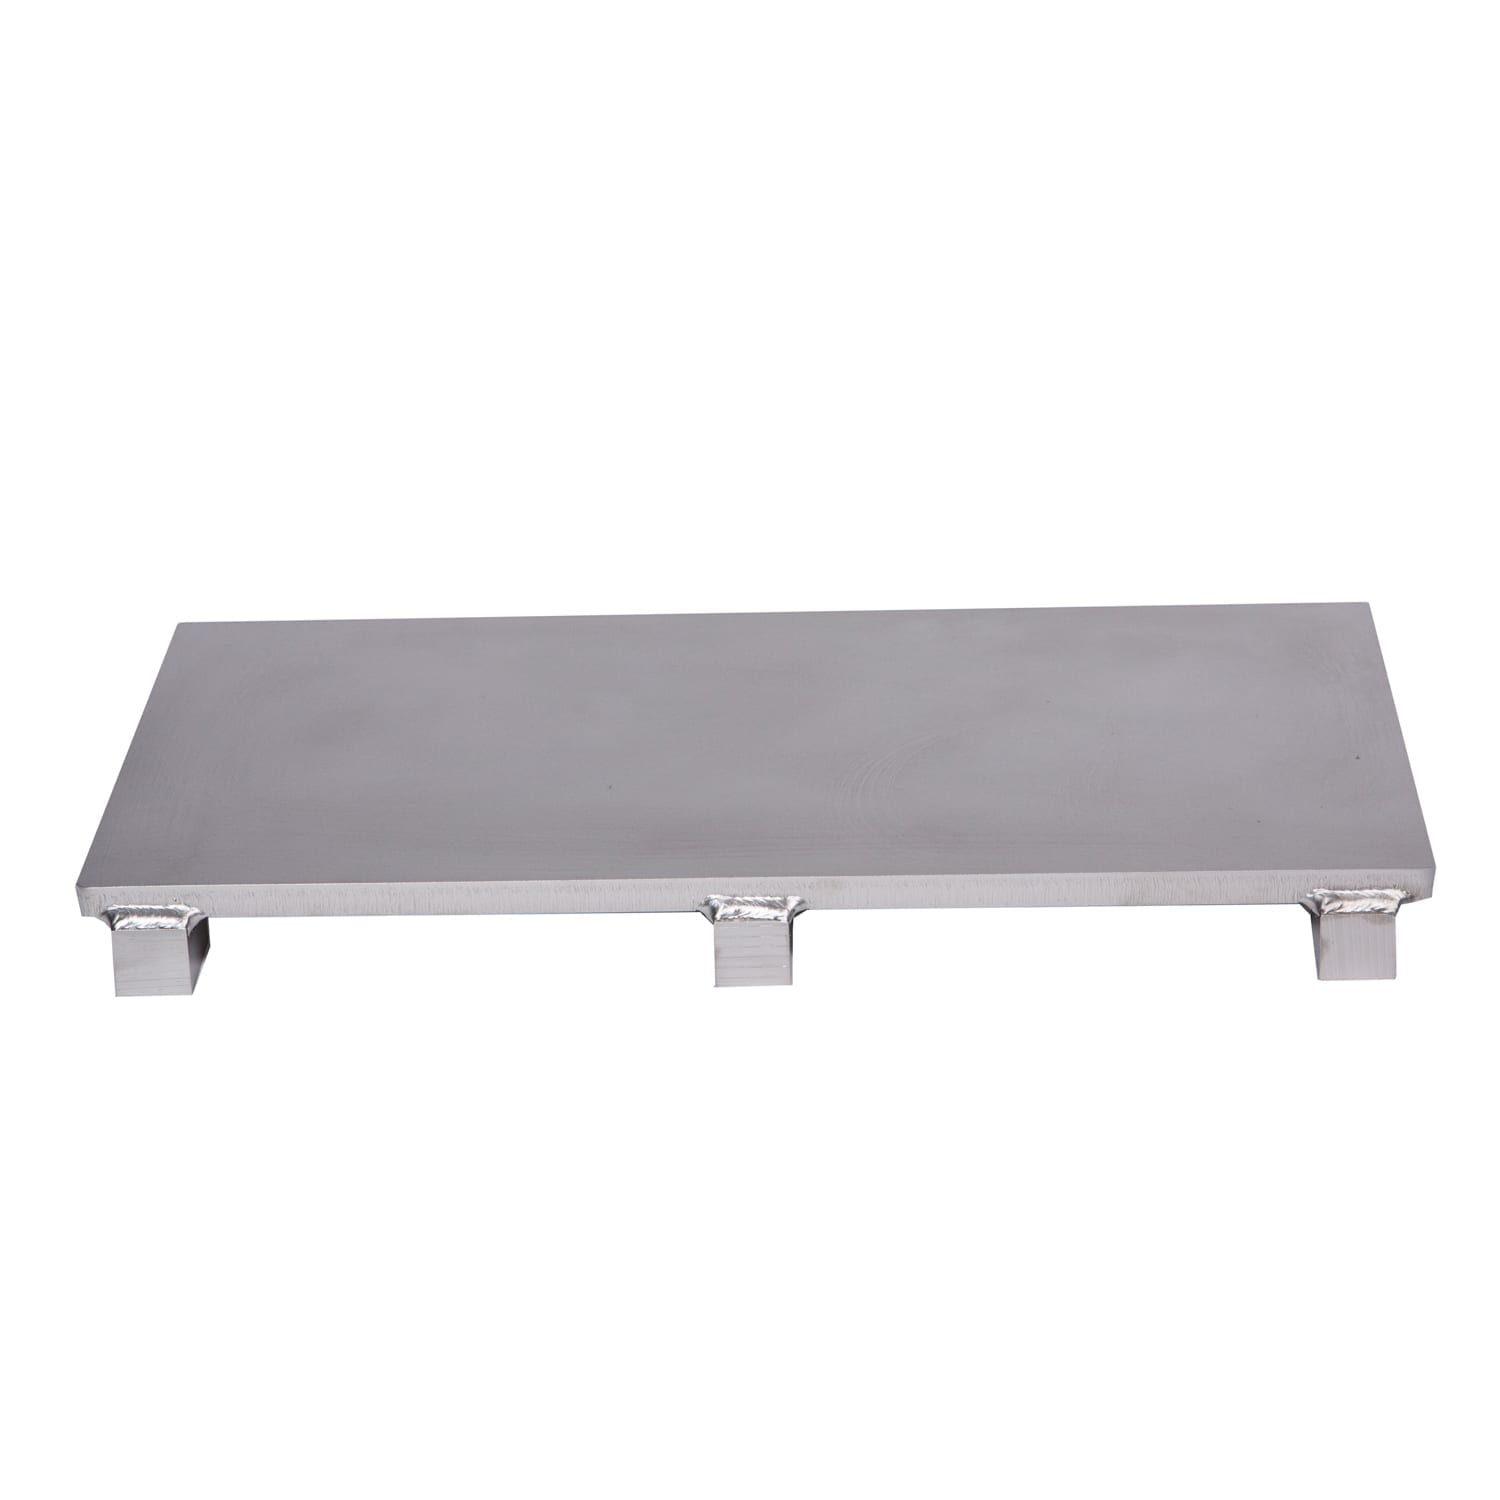 Stainless Steel Drain Grates Awi